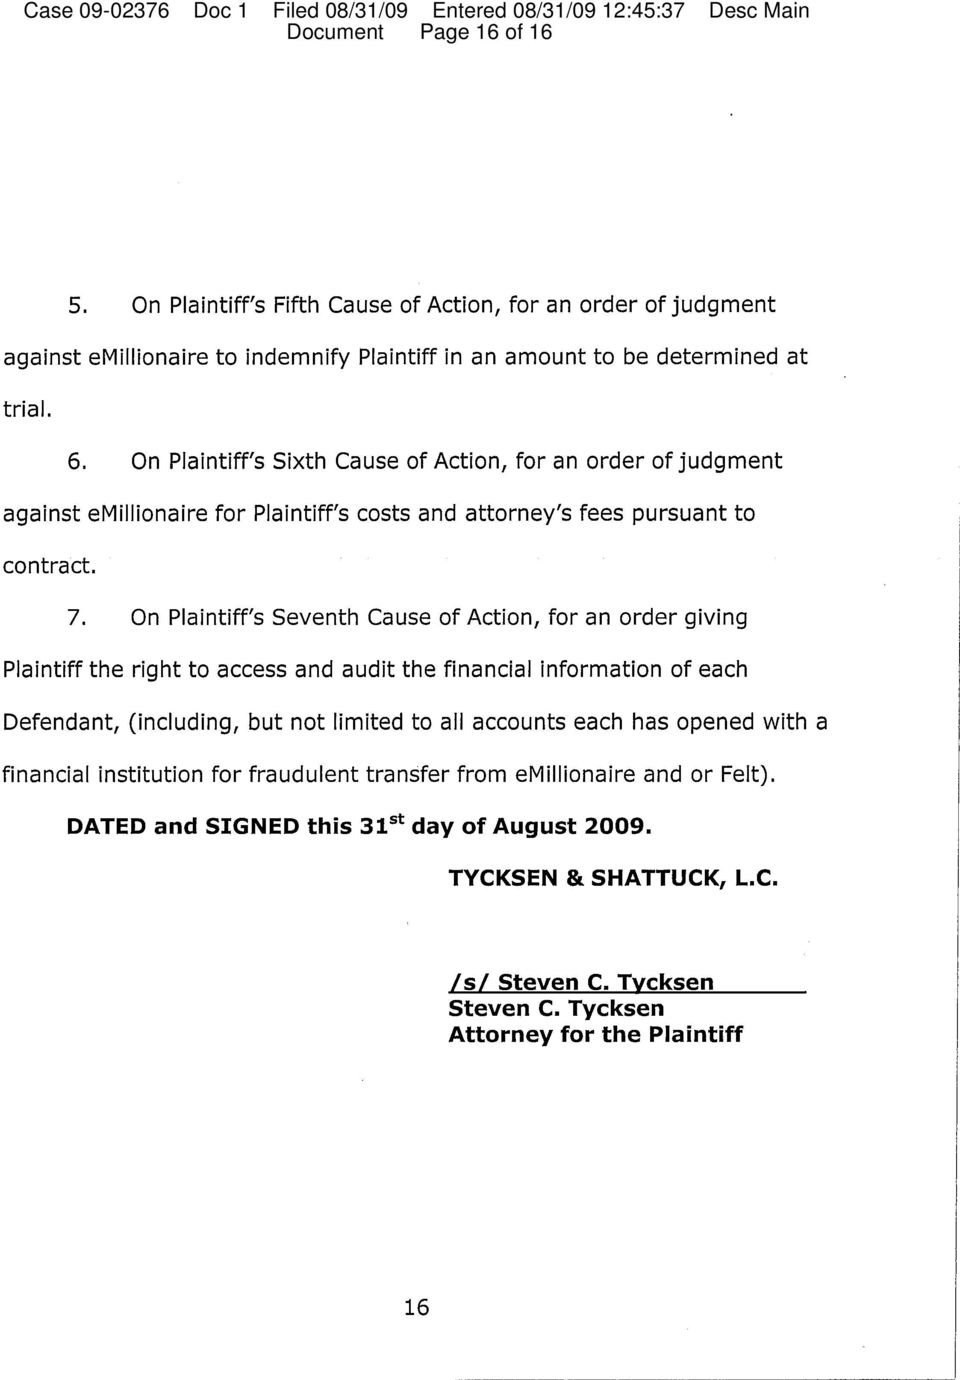 On Plaintiff's Seventh Cause of Action, for an order giving Plaintiff the right to access and audit the financial information of each Defendant, (including, but not limited to all accounts